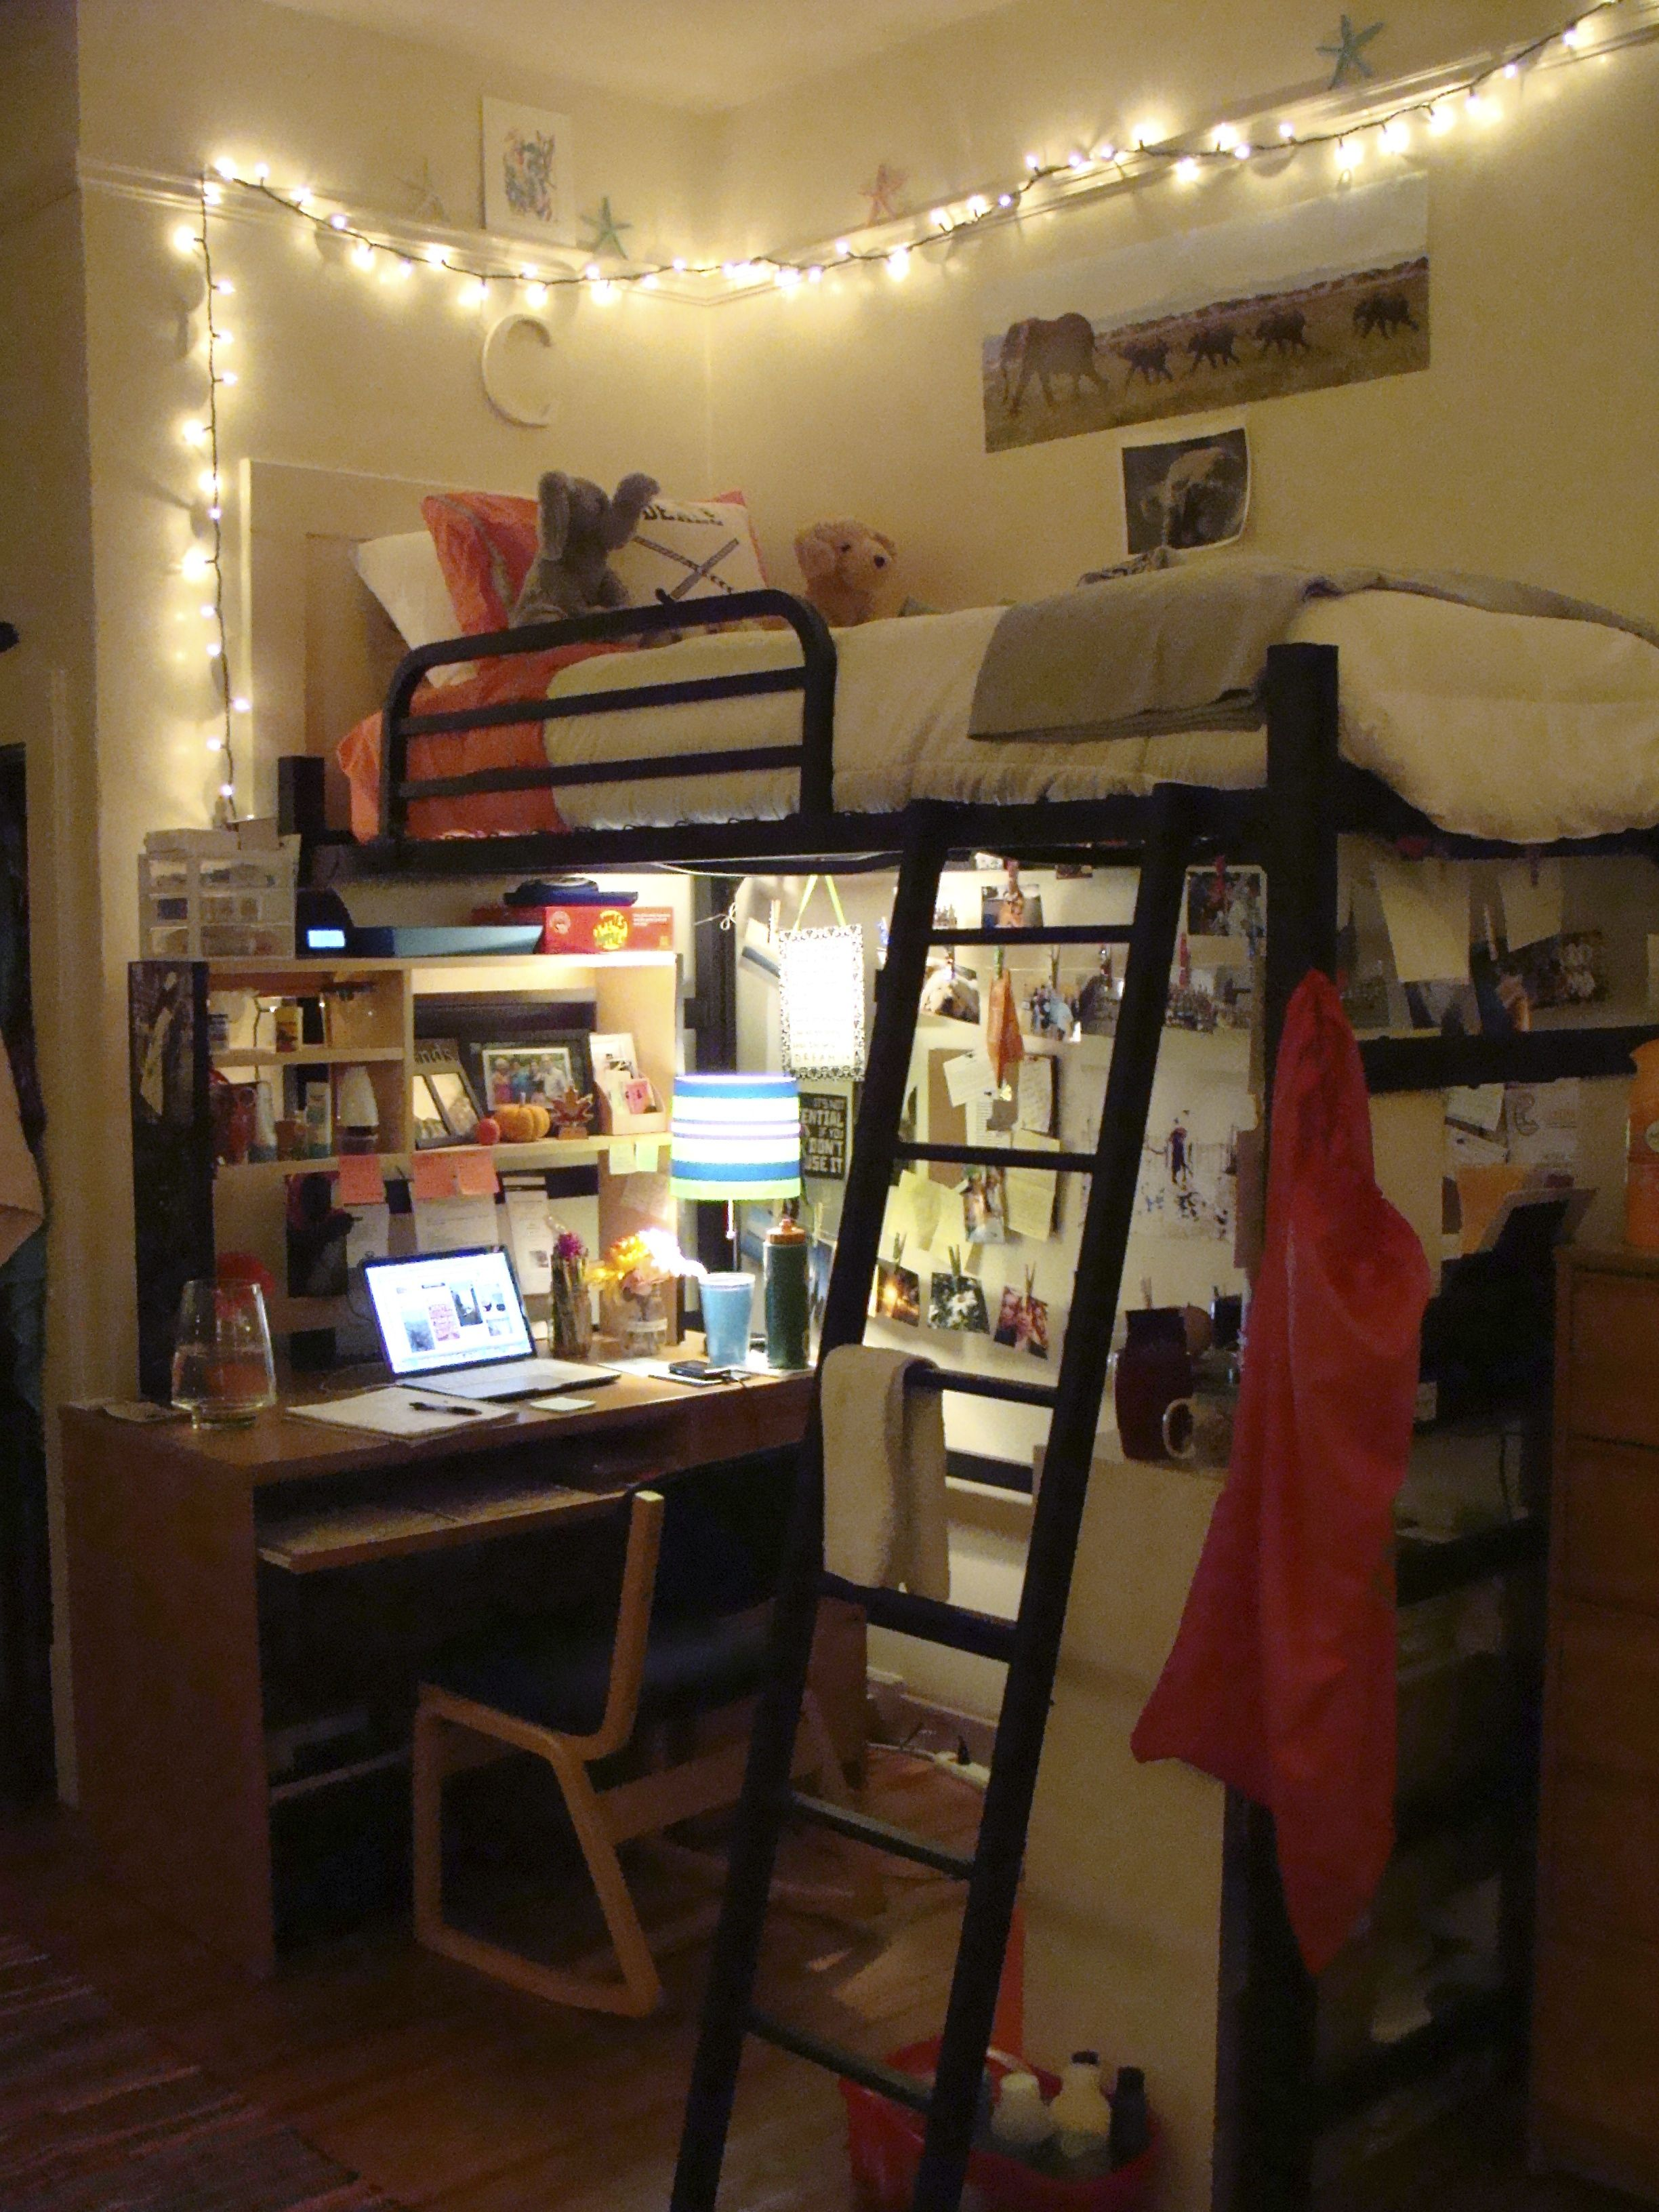 Love How This Desk Is Shifted To Be Adjacent To The Loft Bed Instead Of ·  College Dorm RoomsCollege ... Part 74